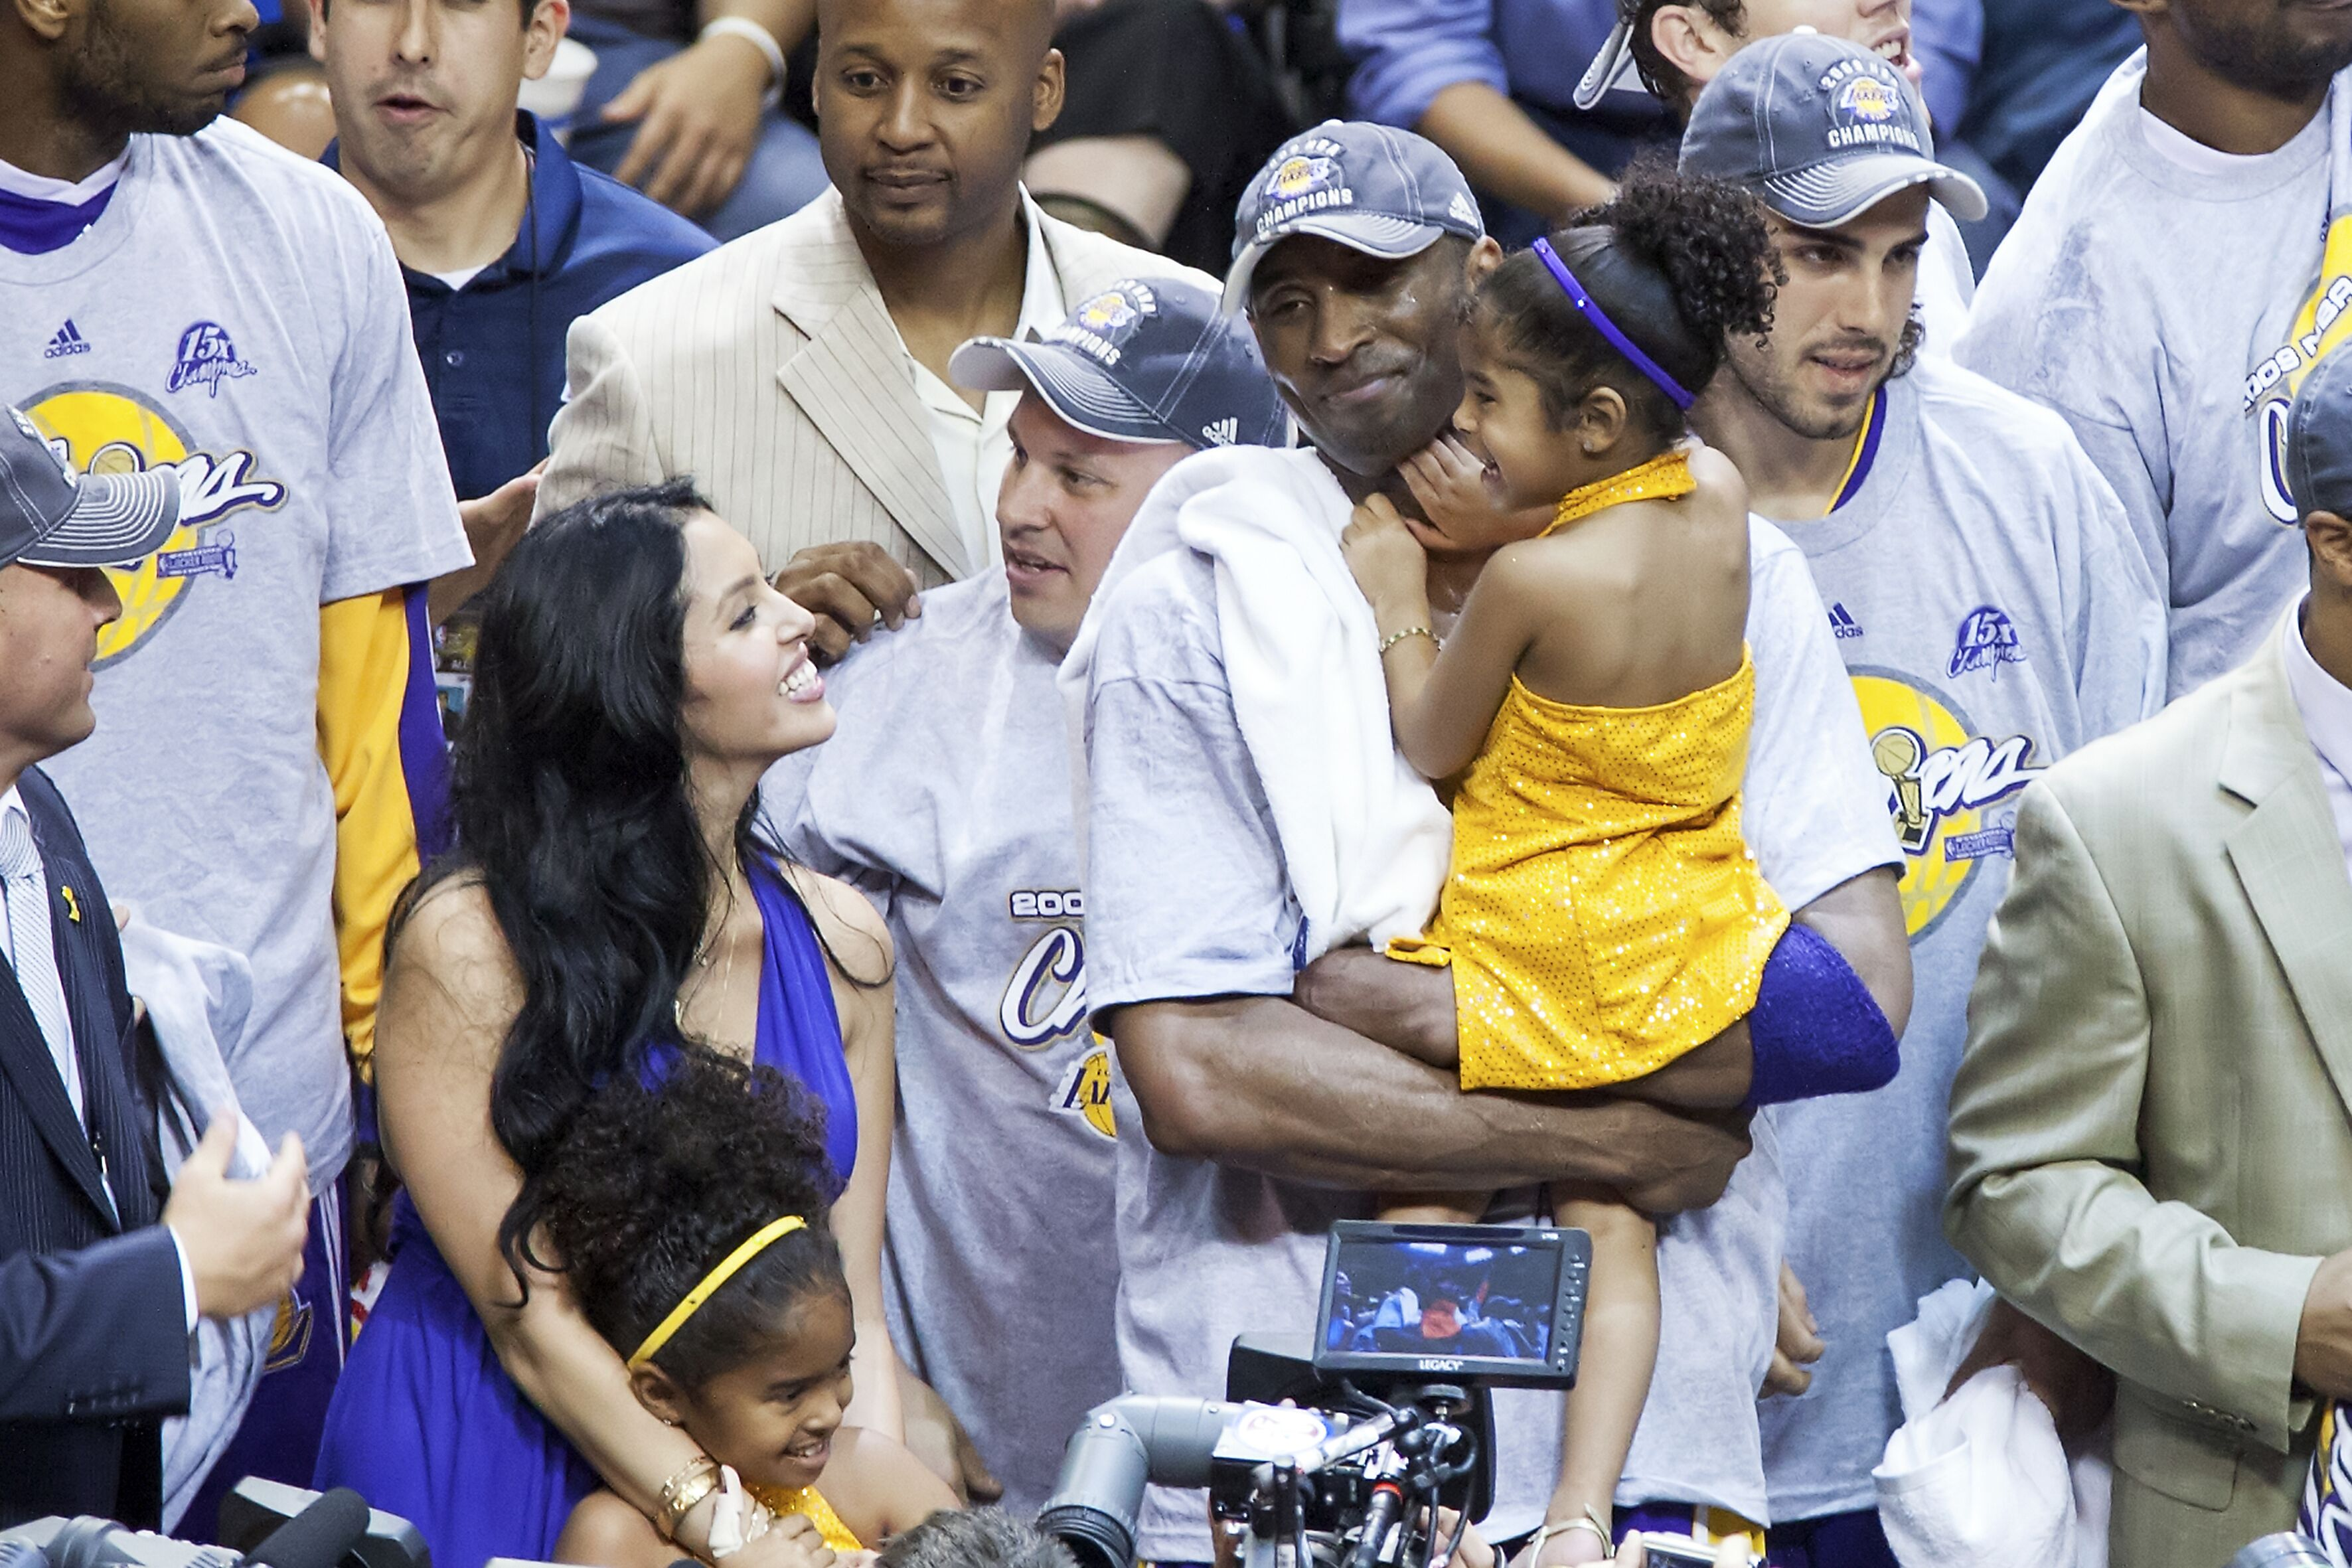 Kobe Bryant holds his daughter Gianna while standing next to her mother Vanessa after Game Five of the NBA Finals on June 14, 2009. | Photo: Getty Images